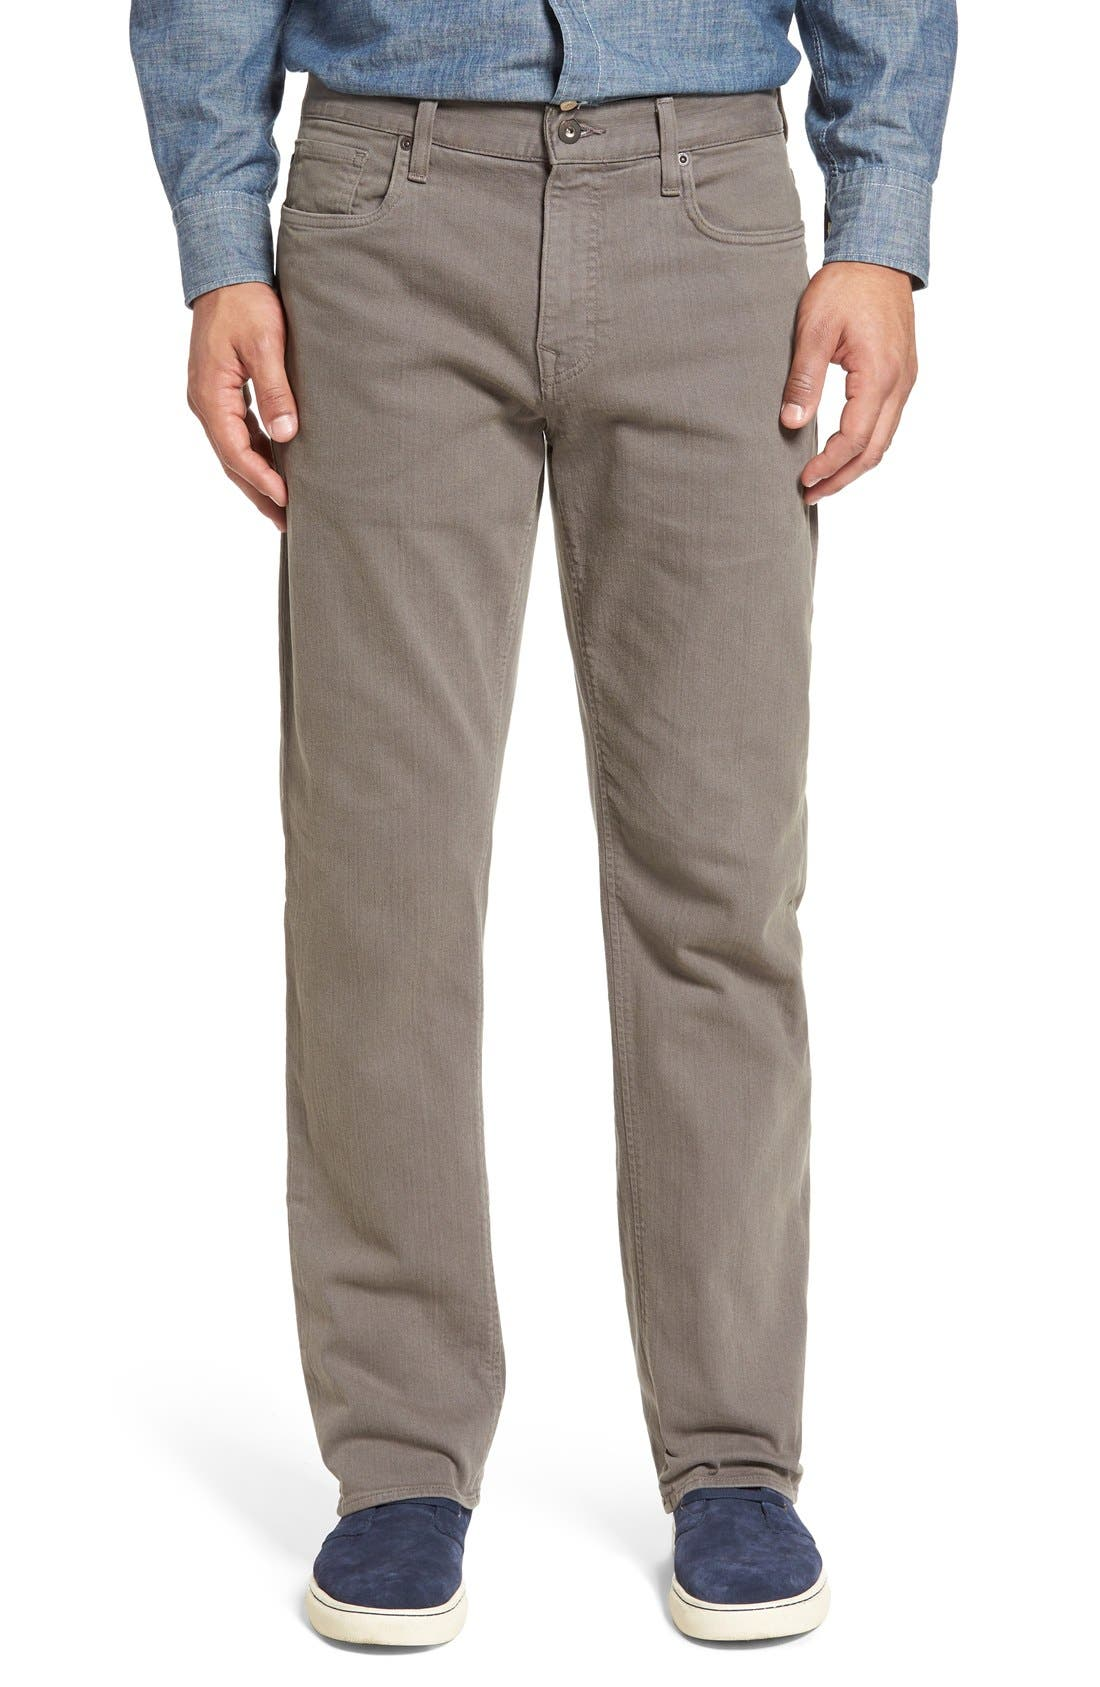 Cutter & Buck Greenwood Relaxed Fit Jeans (Link)